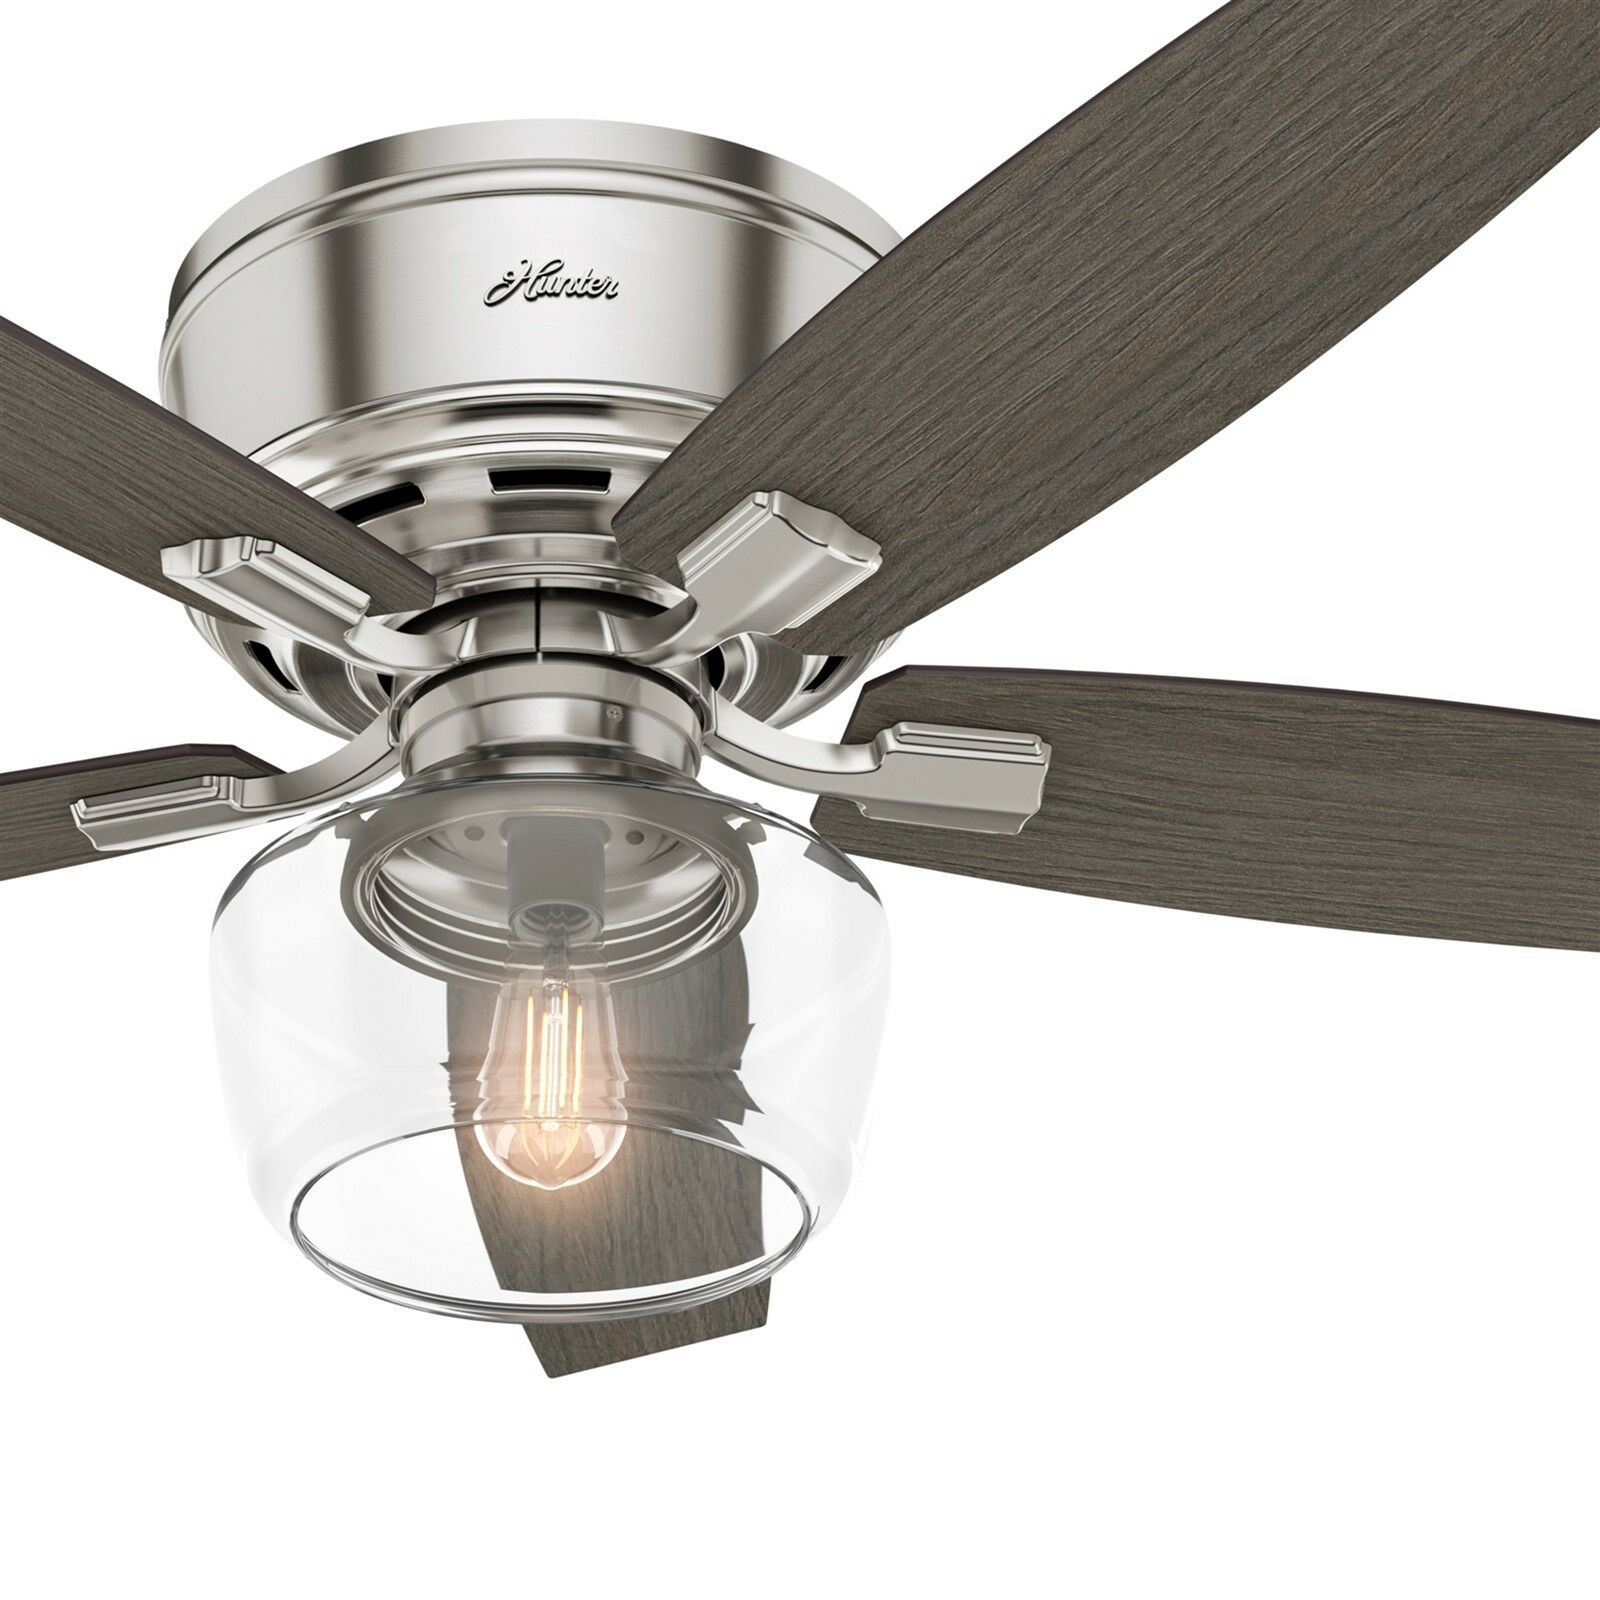 Low Profile Brushed Nickel Ceiling Fan